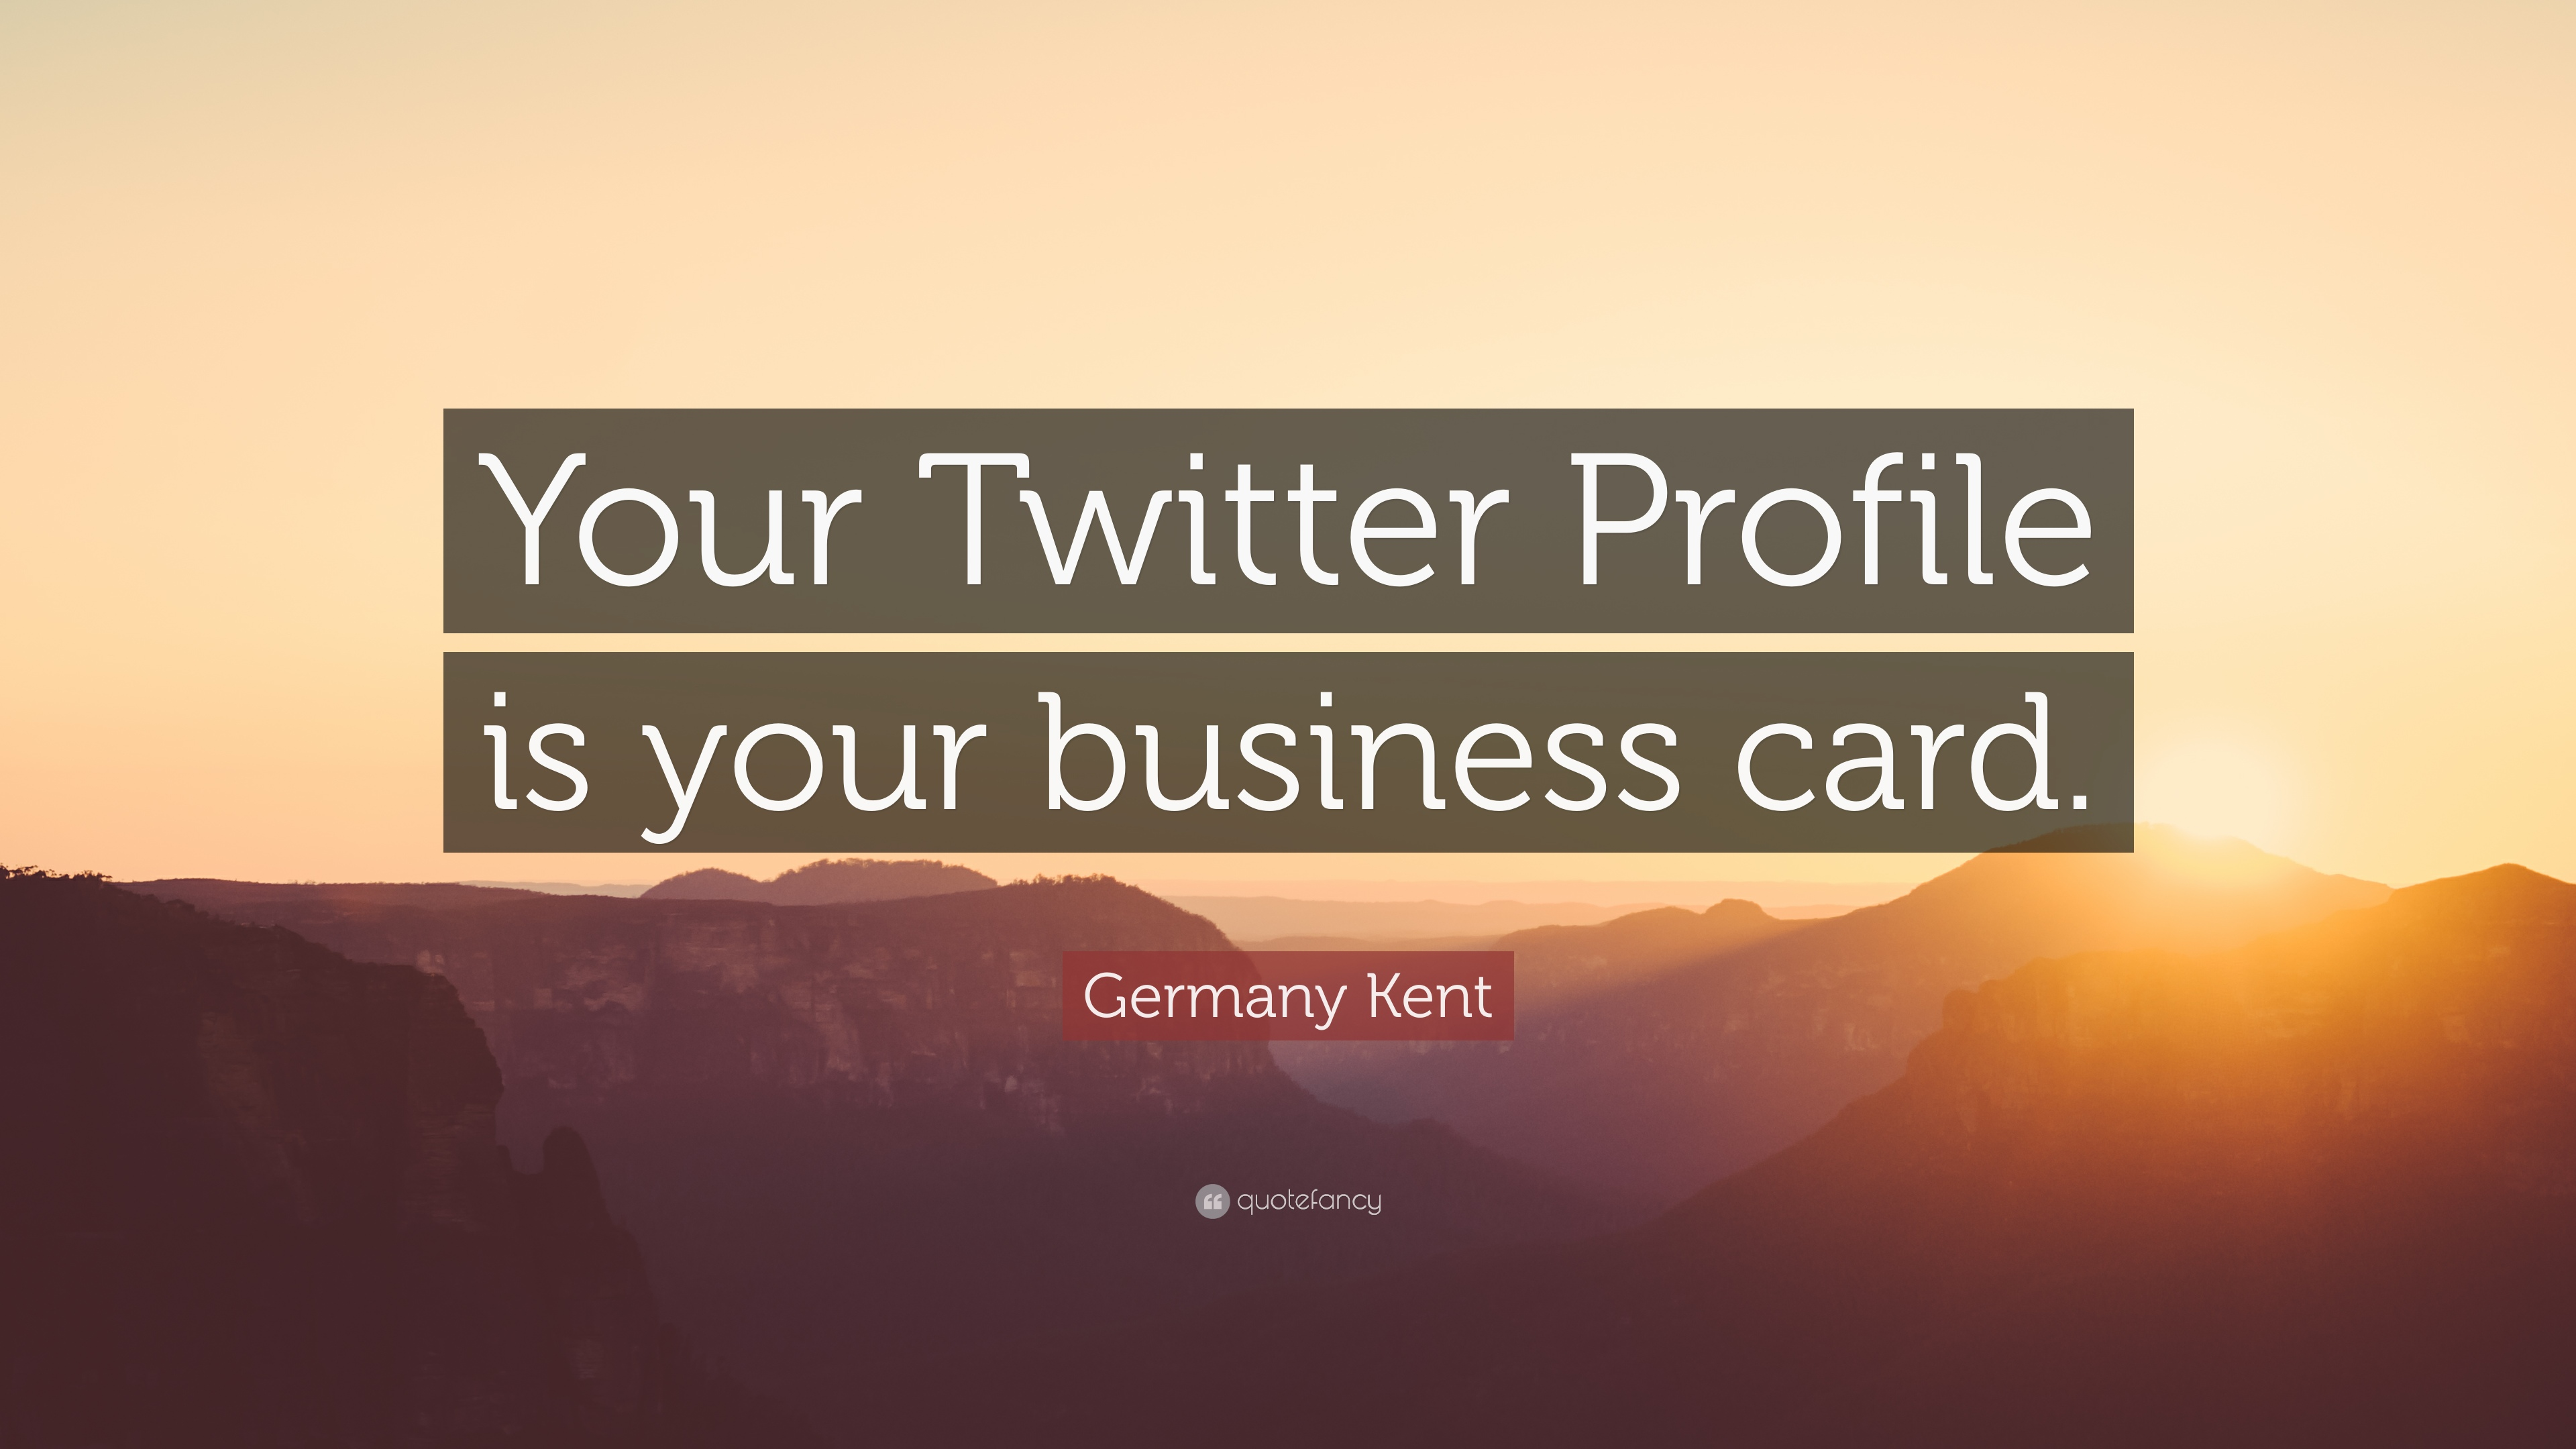 Germany kent quote your twitter profile is your business card 7 germany kent quote your twitter profile is your business card reheart Images